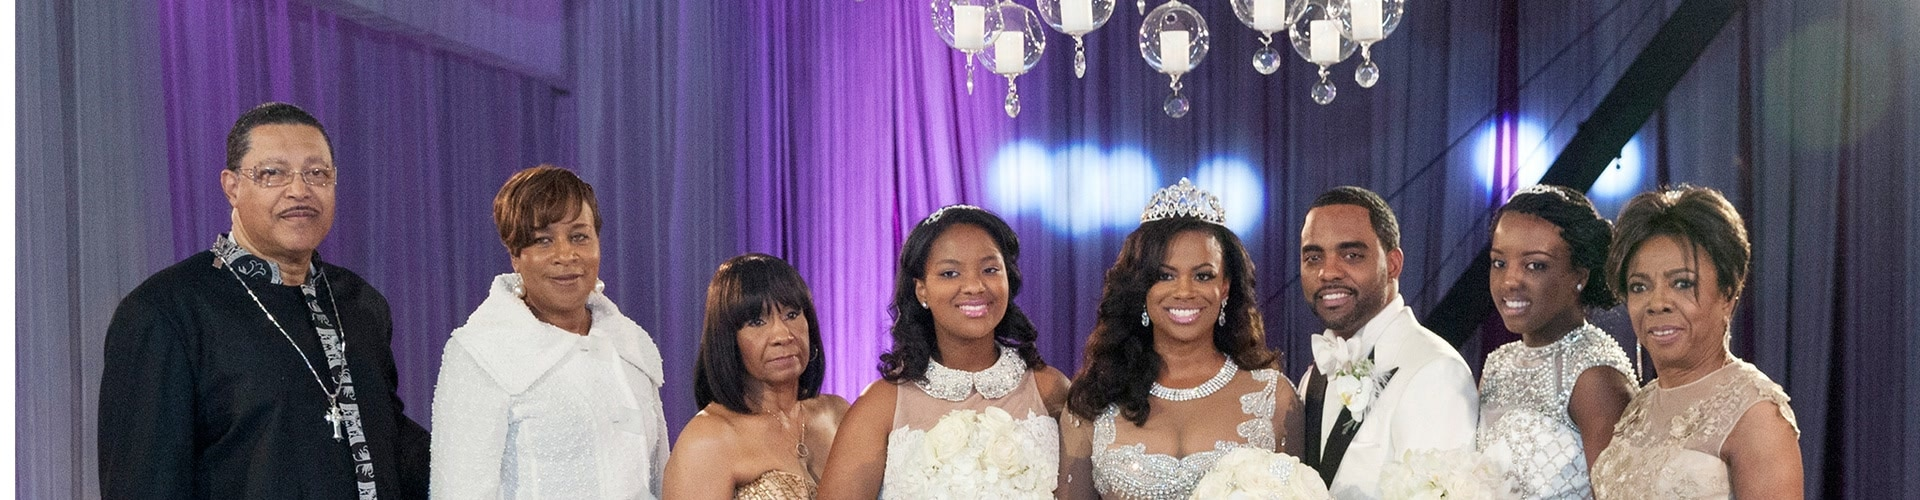 Watch The Real Housewives of Atlanta: Kandi's Wedding Online